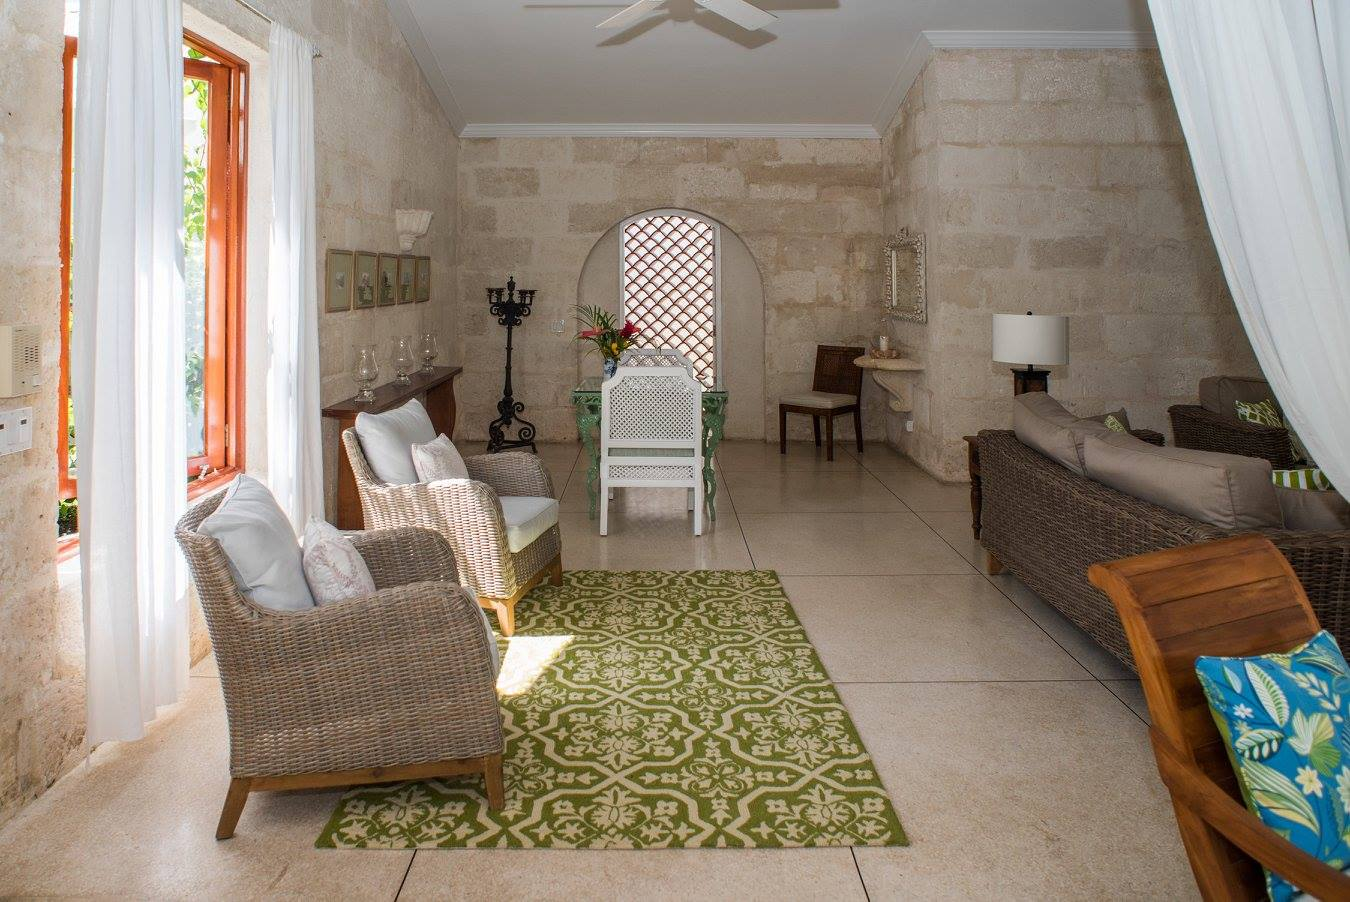 stone walls with table and chairs